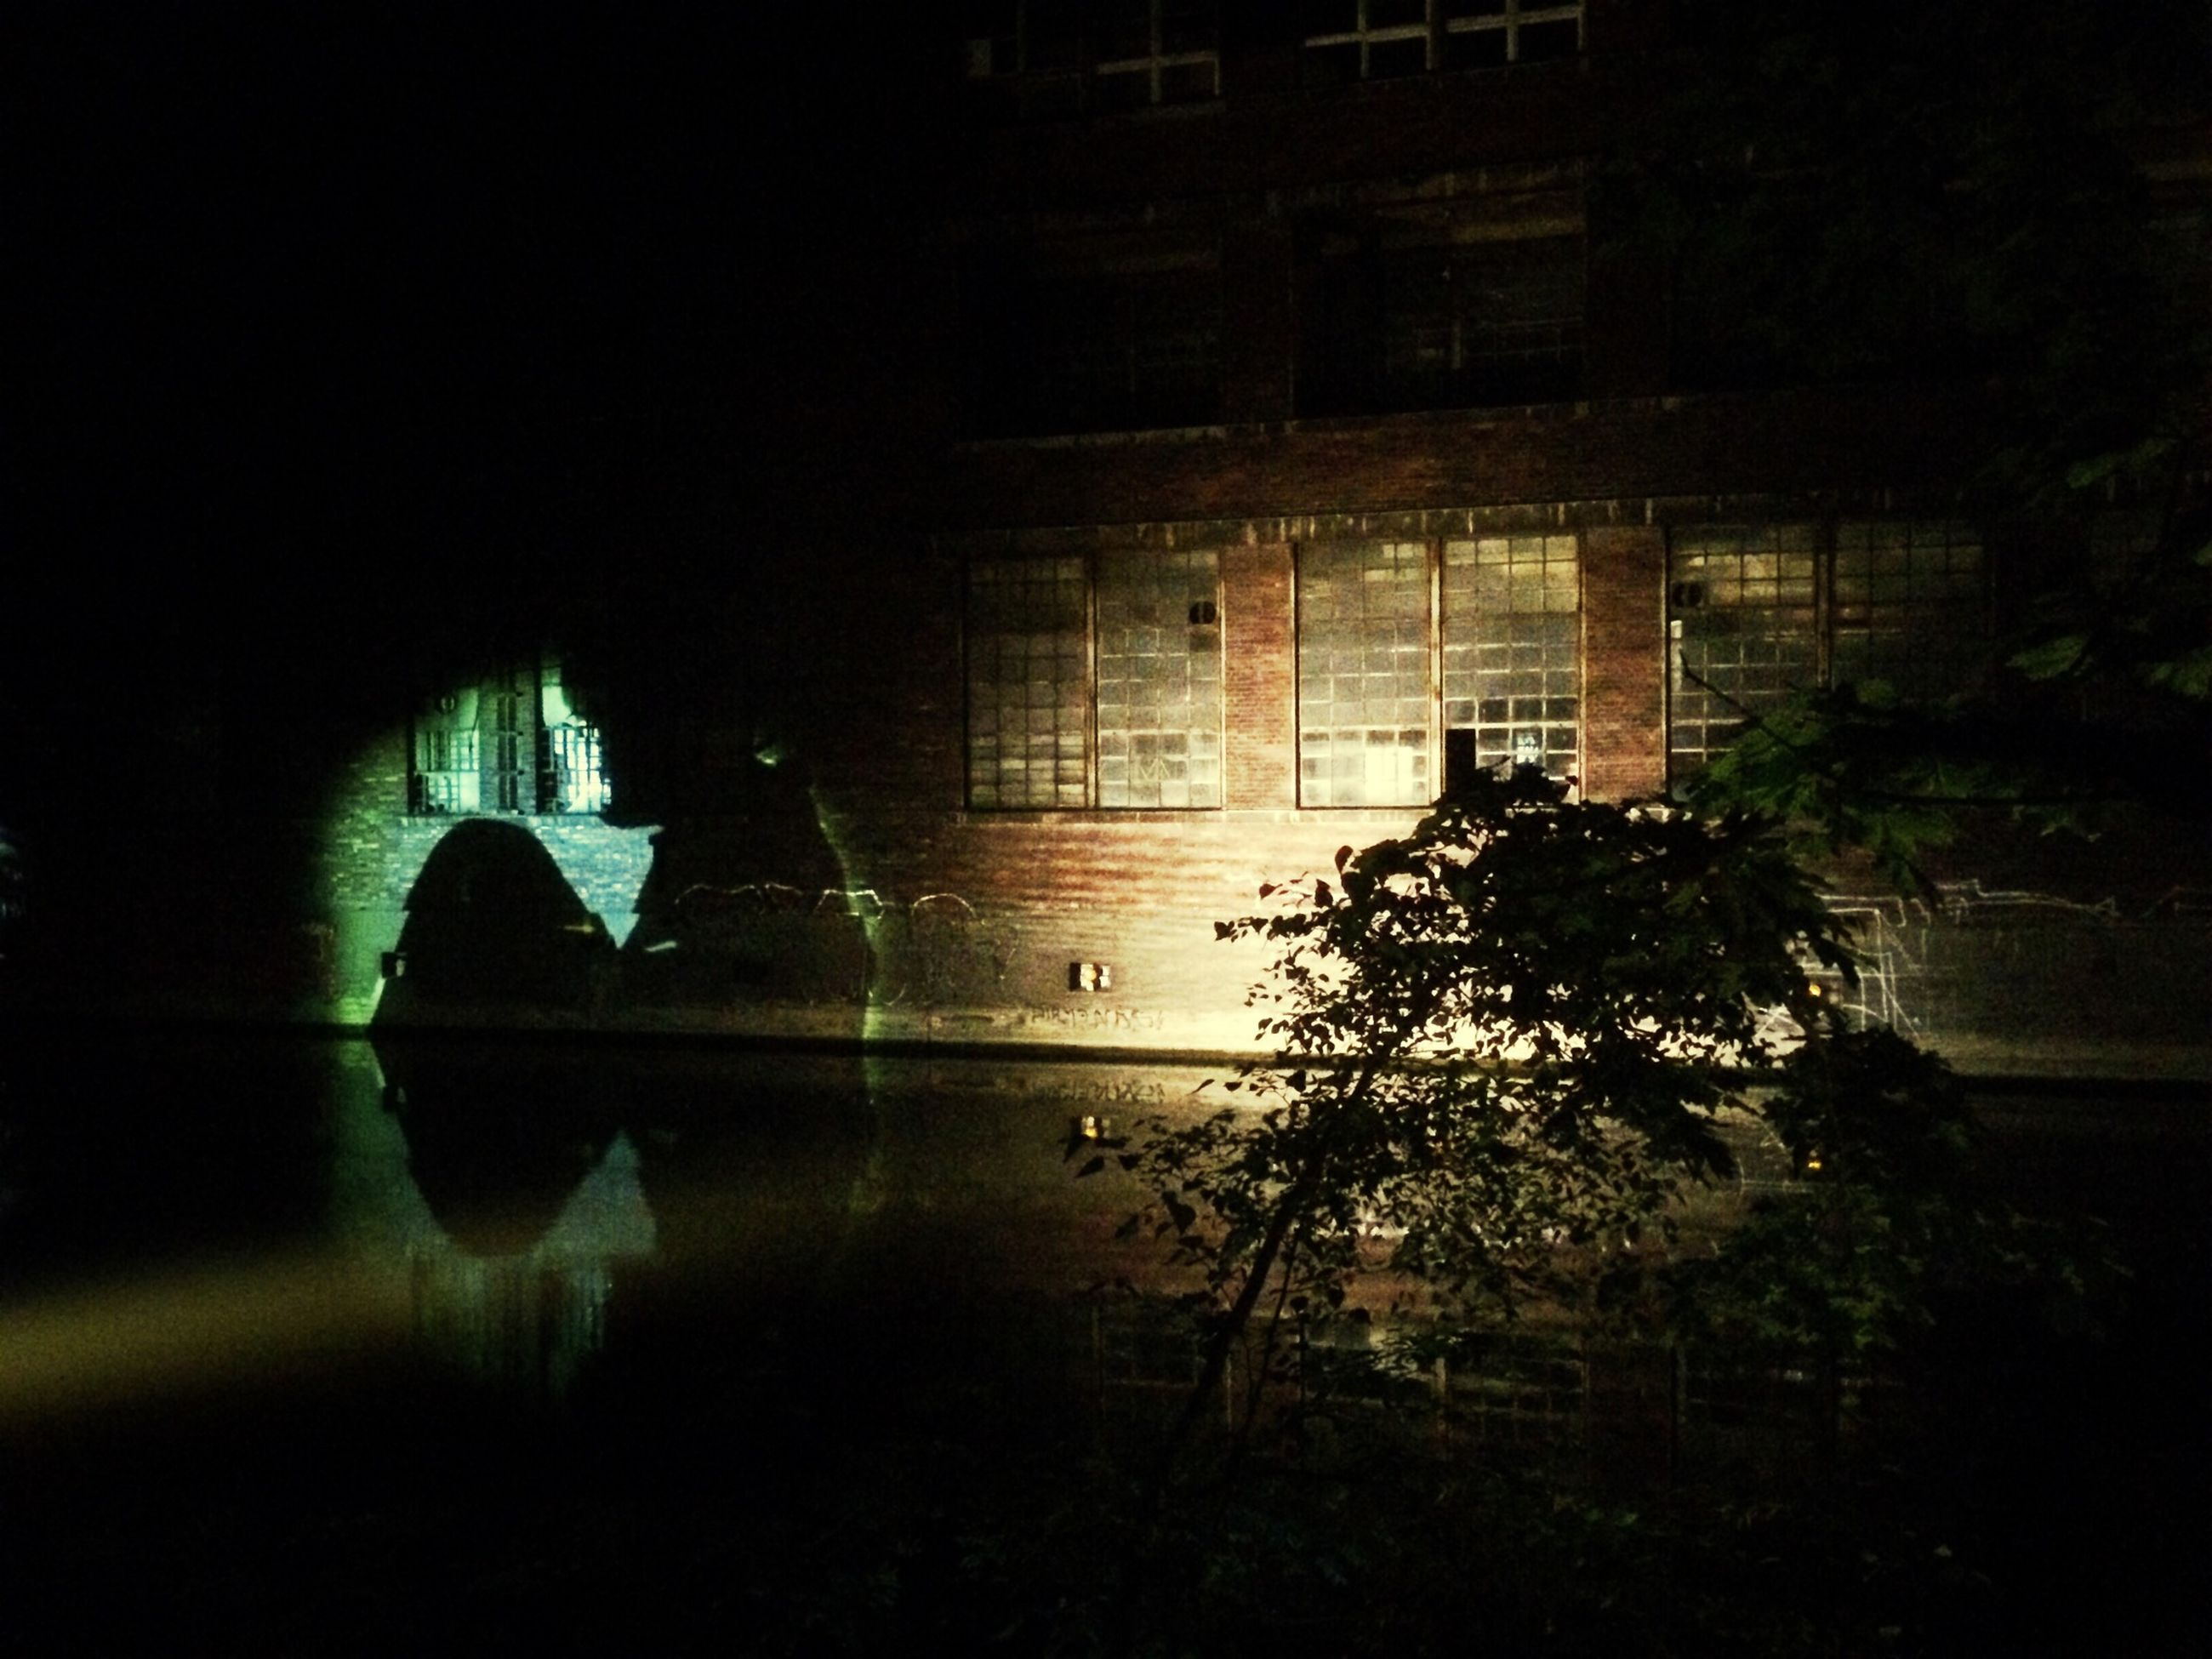 architecture, built structure, reflection, tree, night, building exterior, water, illuminated, dark, window, silhouette, building, indoors, arch, no people, standing water, river, pond, nature